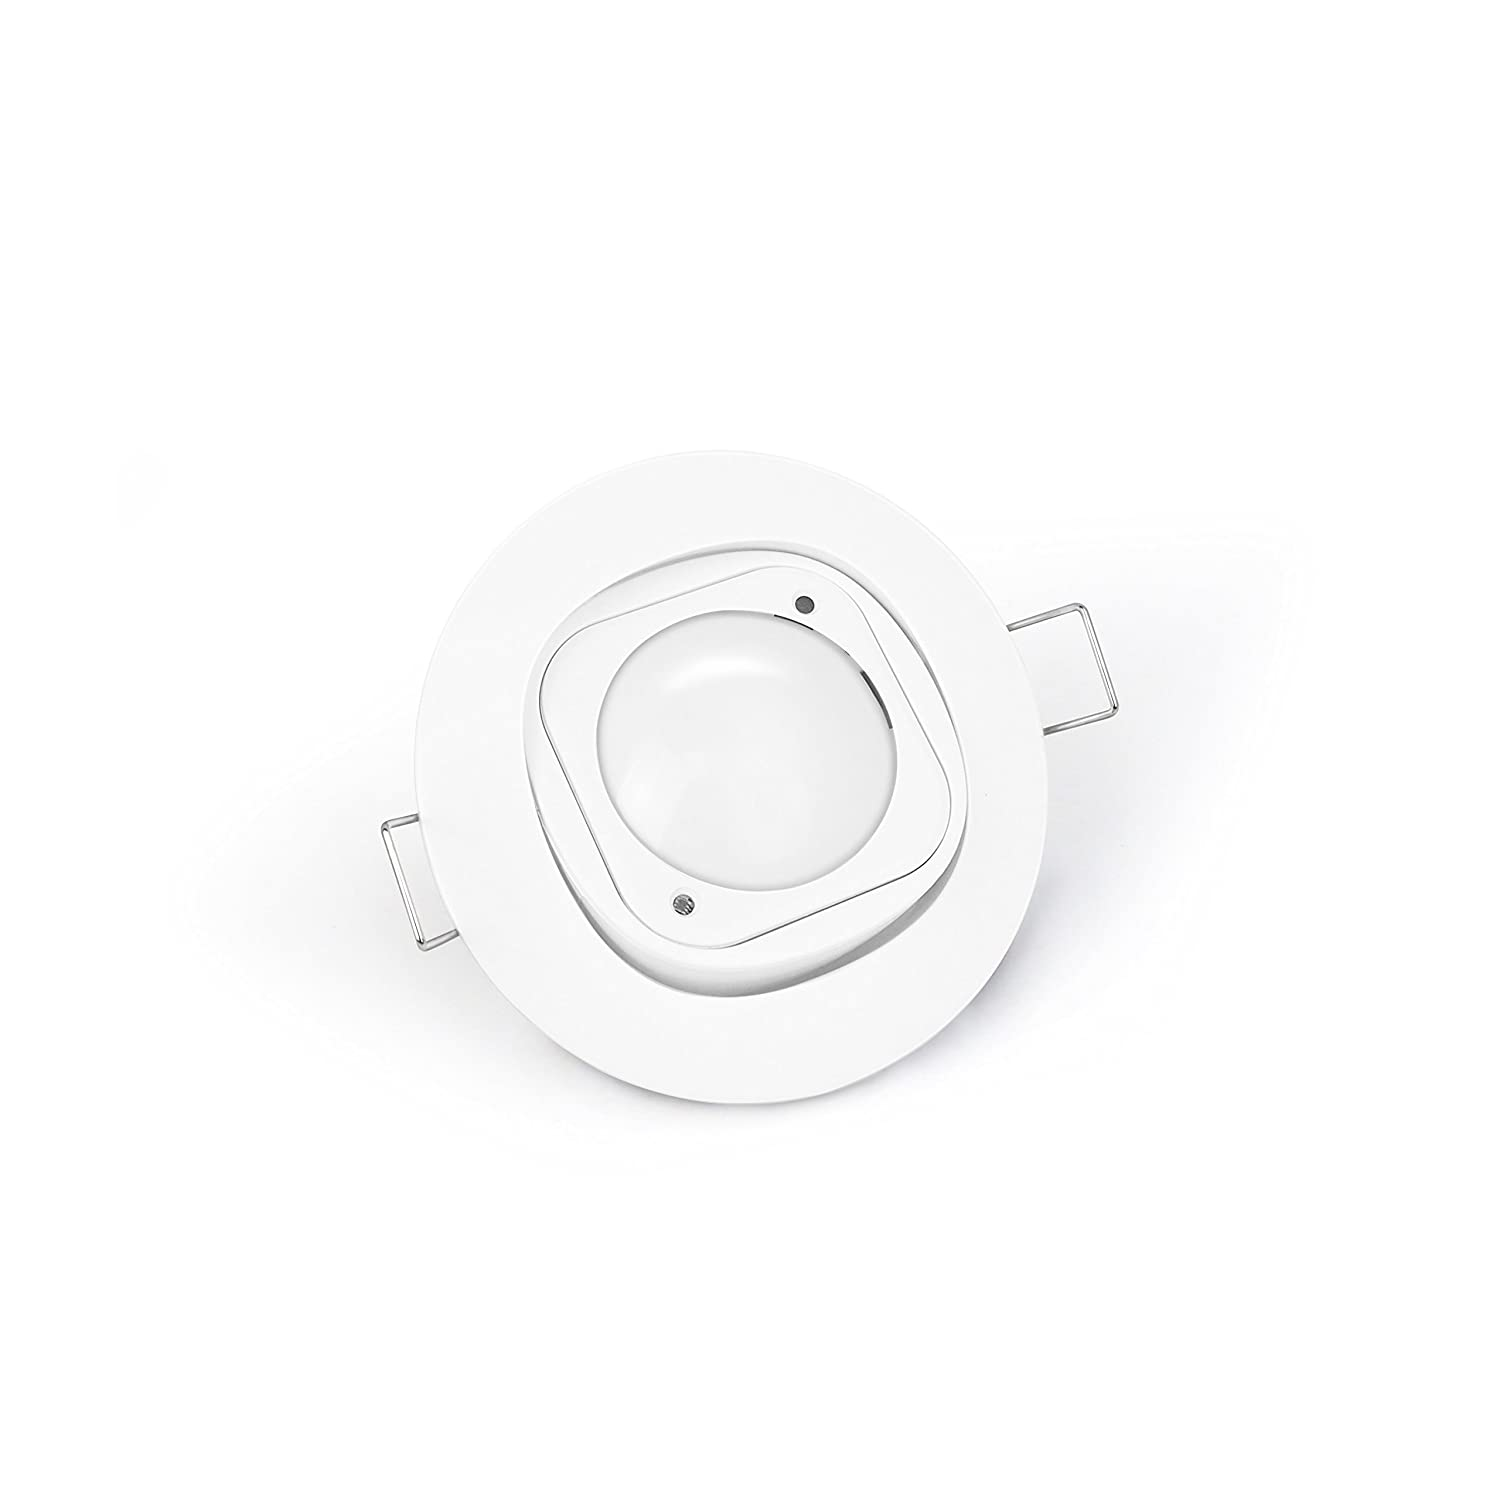 Luce Z-Wave Plus 6-in-1 Sensore di Movimento Batteria Inclusa Aeotec Multisensor 6 /& Ceiling Recessor Vibrazione UV Temperatura Umidit/à